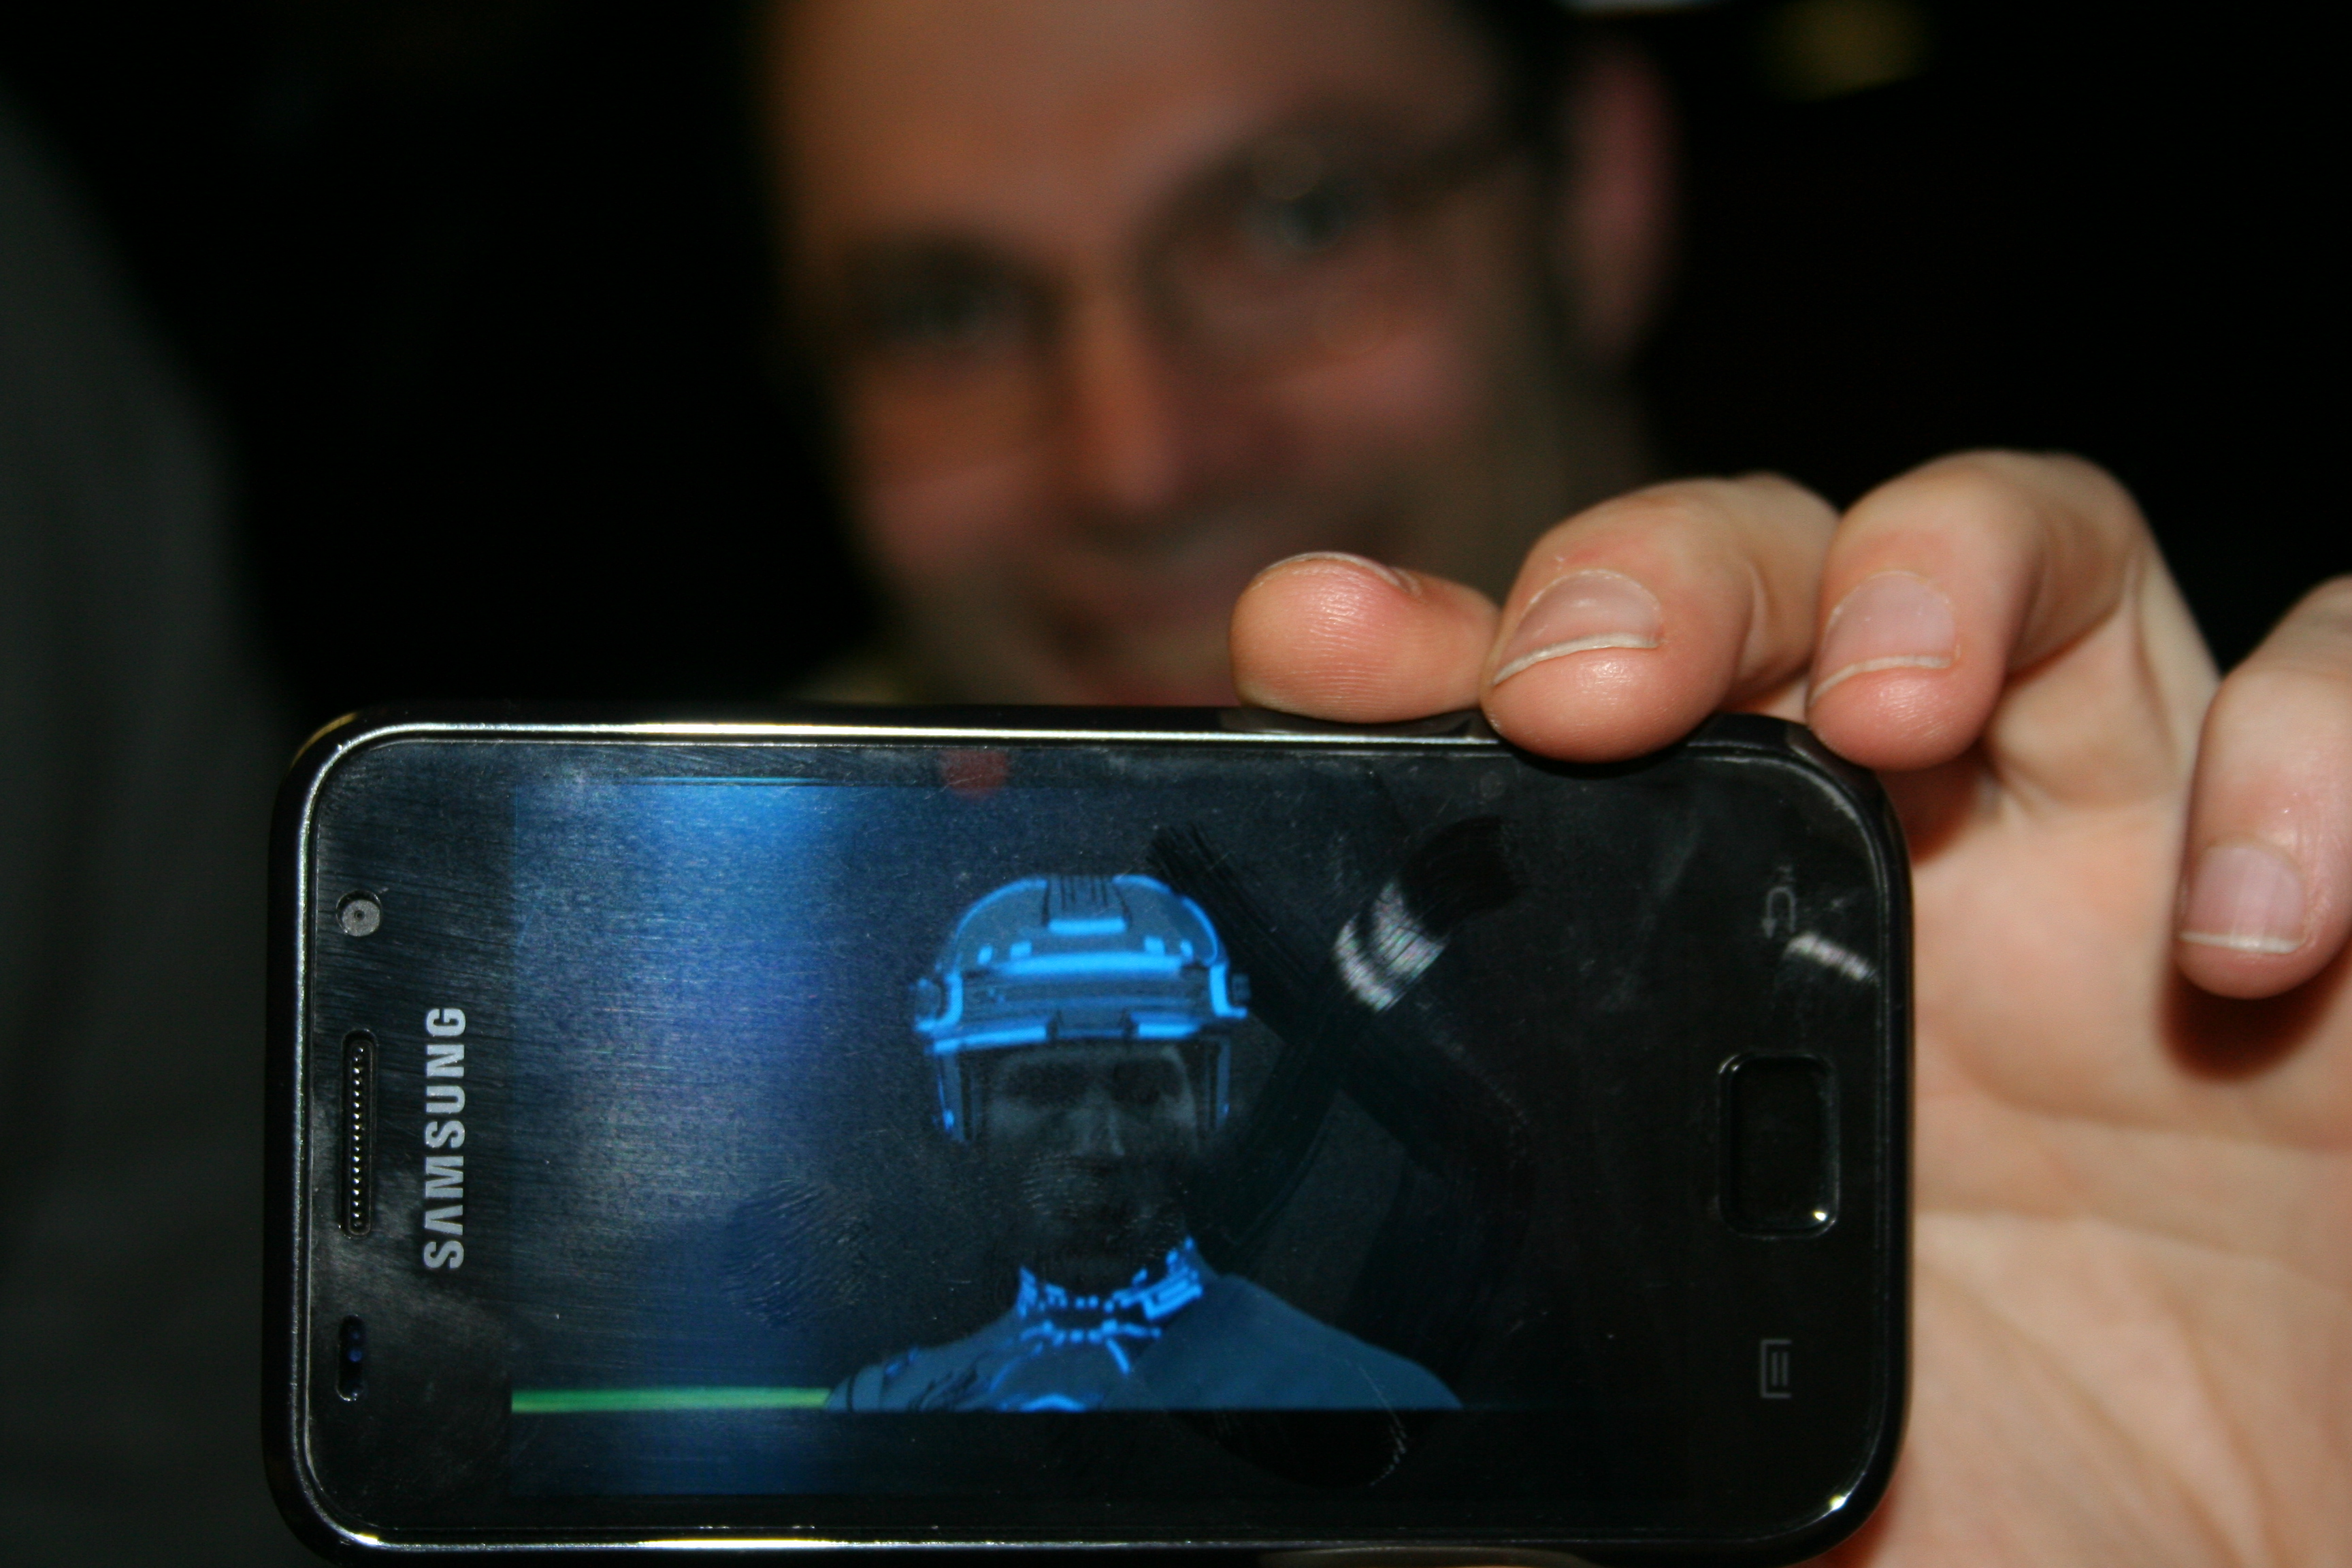 Trying out the new smartphone app that shows what you'd look like in the Tron universe.